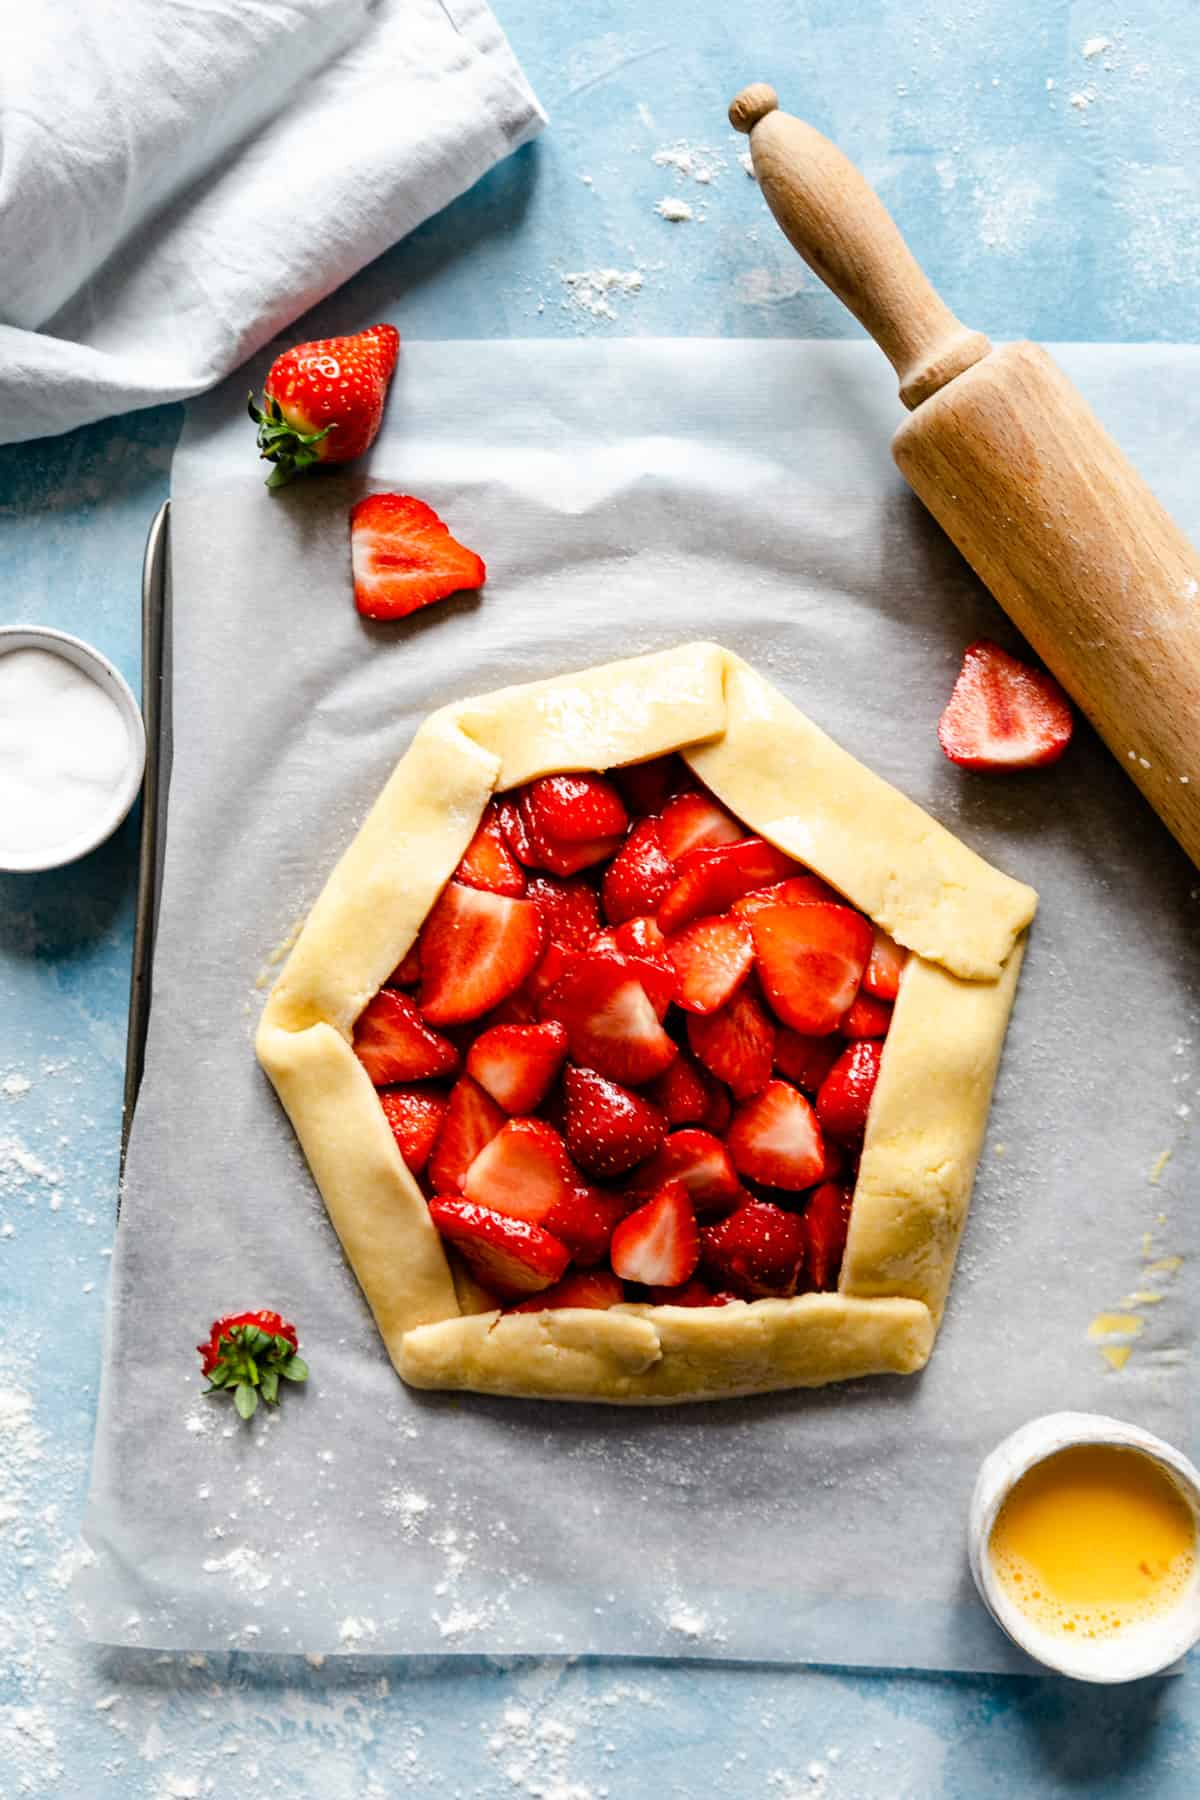 top view of unbaked strawberry galette on a blue background